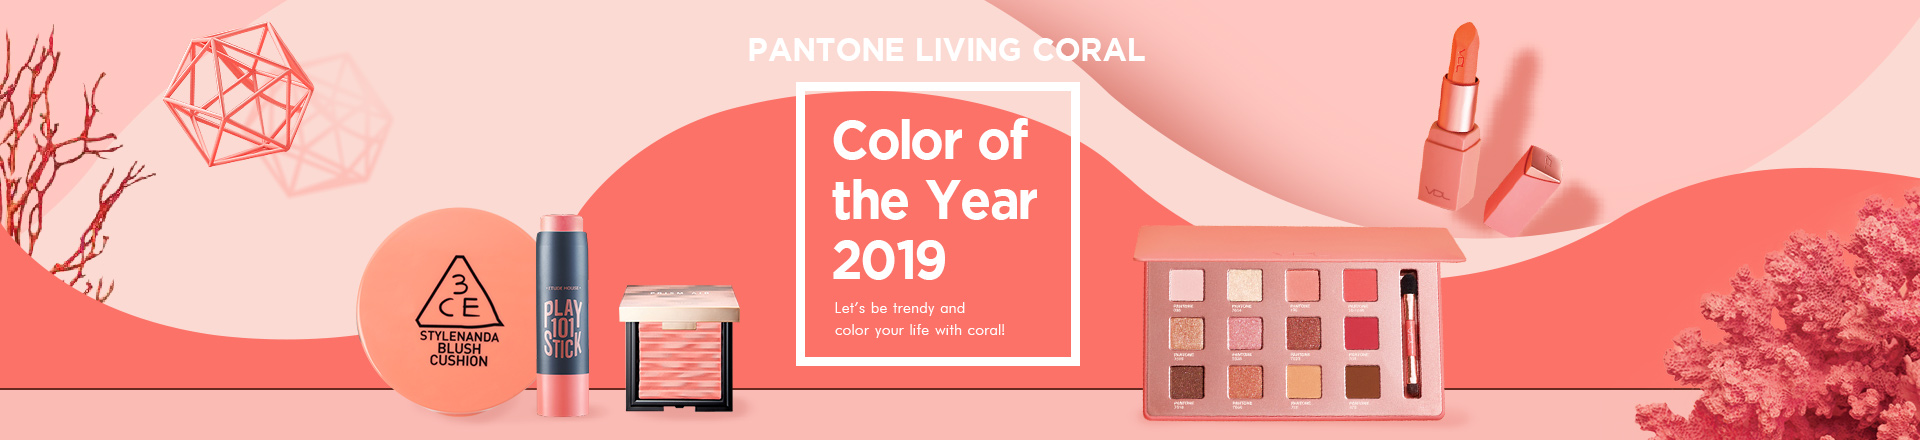 Color Of The Year 2019: Living Coral